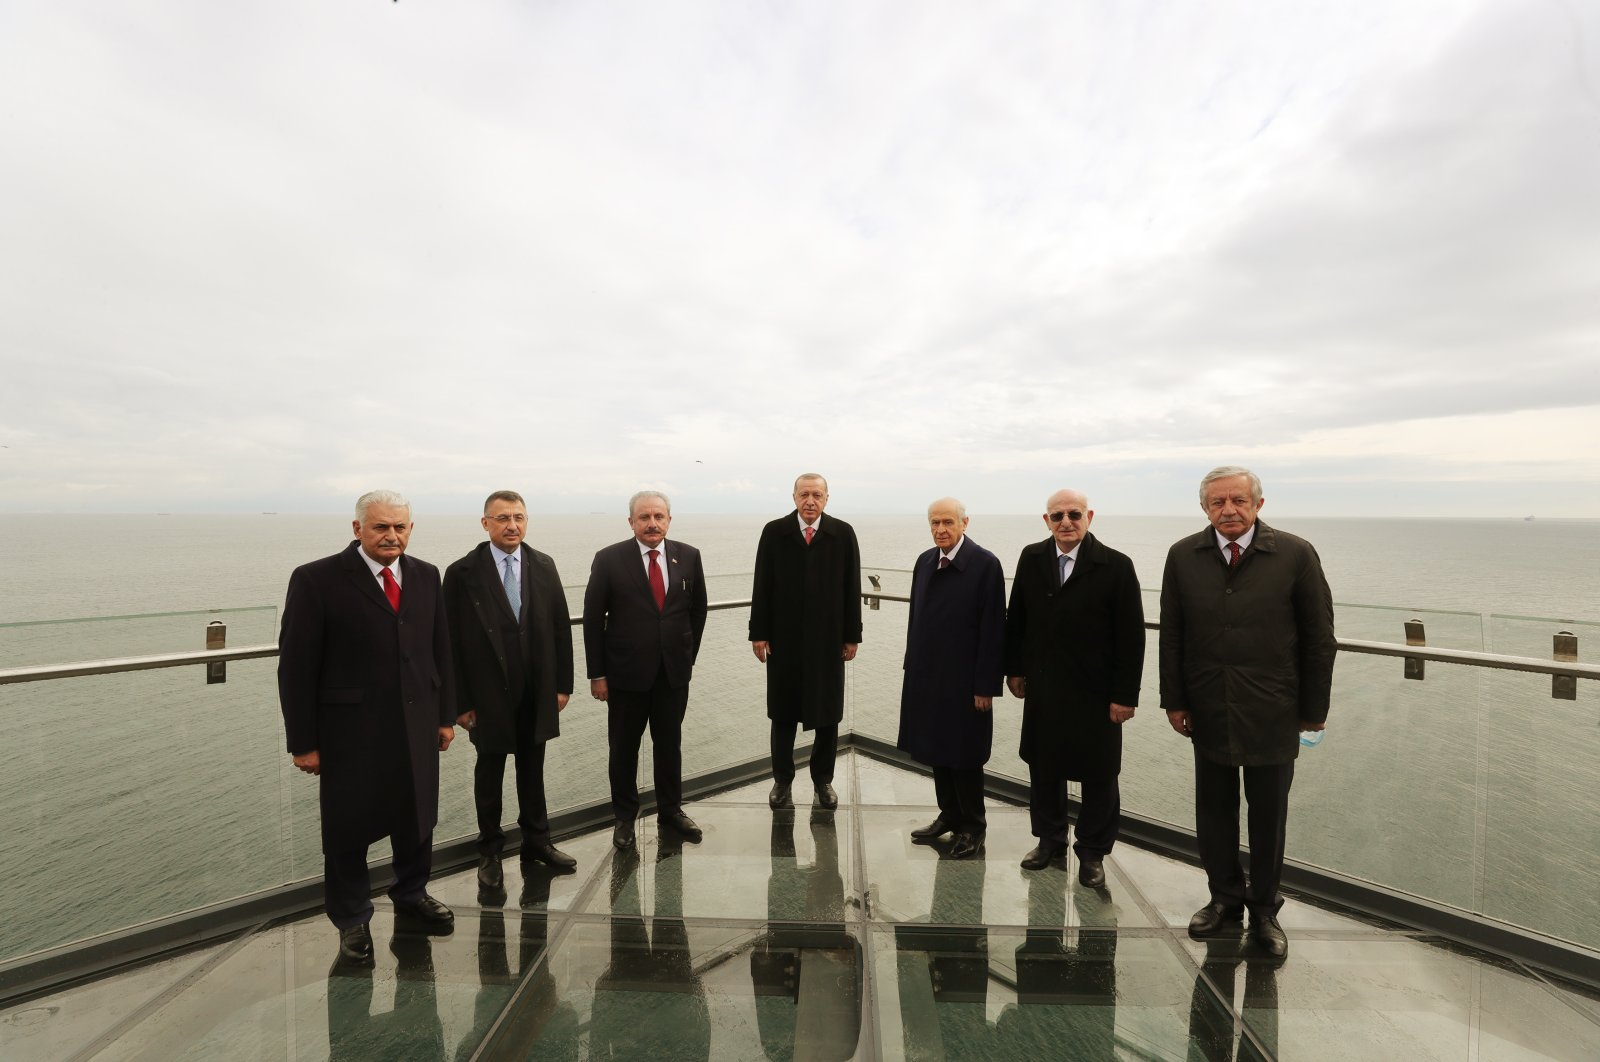 President Recep Tayyip Erdoğan (c), alongside Parliamentary Speaker Mustafa Şentop (first on the left), Vice President Fuat Oktay (second on the left), Izmir Deputy of AK Party Binali Yıldırım, MHP leader Devlet Bahçeli (first on the right), former Parliamentary Speaker Ismail Kara (second on the right) and Parliament's Deputy Chairman Celal Adan (third on the right), pose just before the inauguration ceremony of Democracy and Freedom Island, May 27, 2020. (DHA)